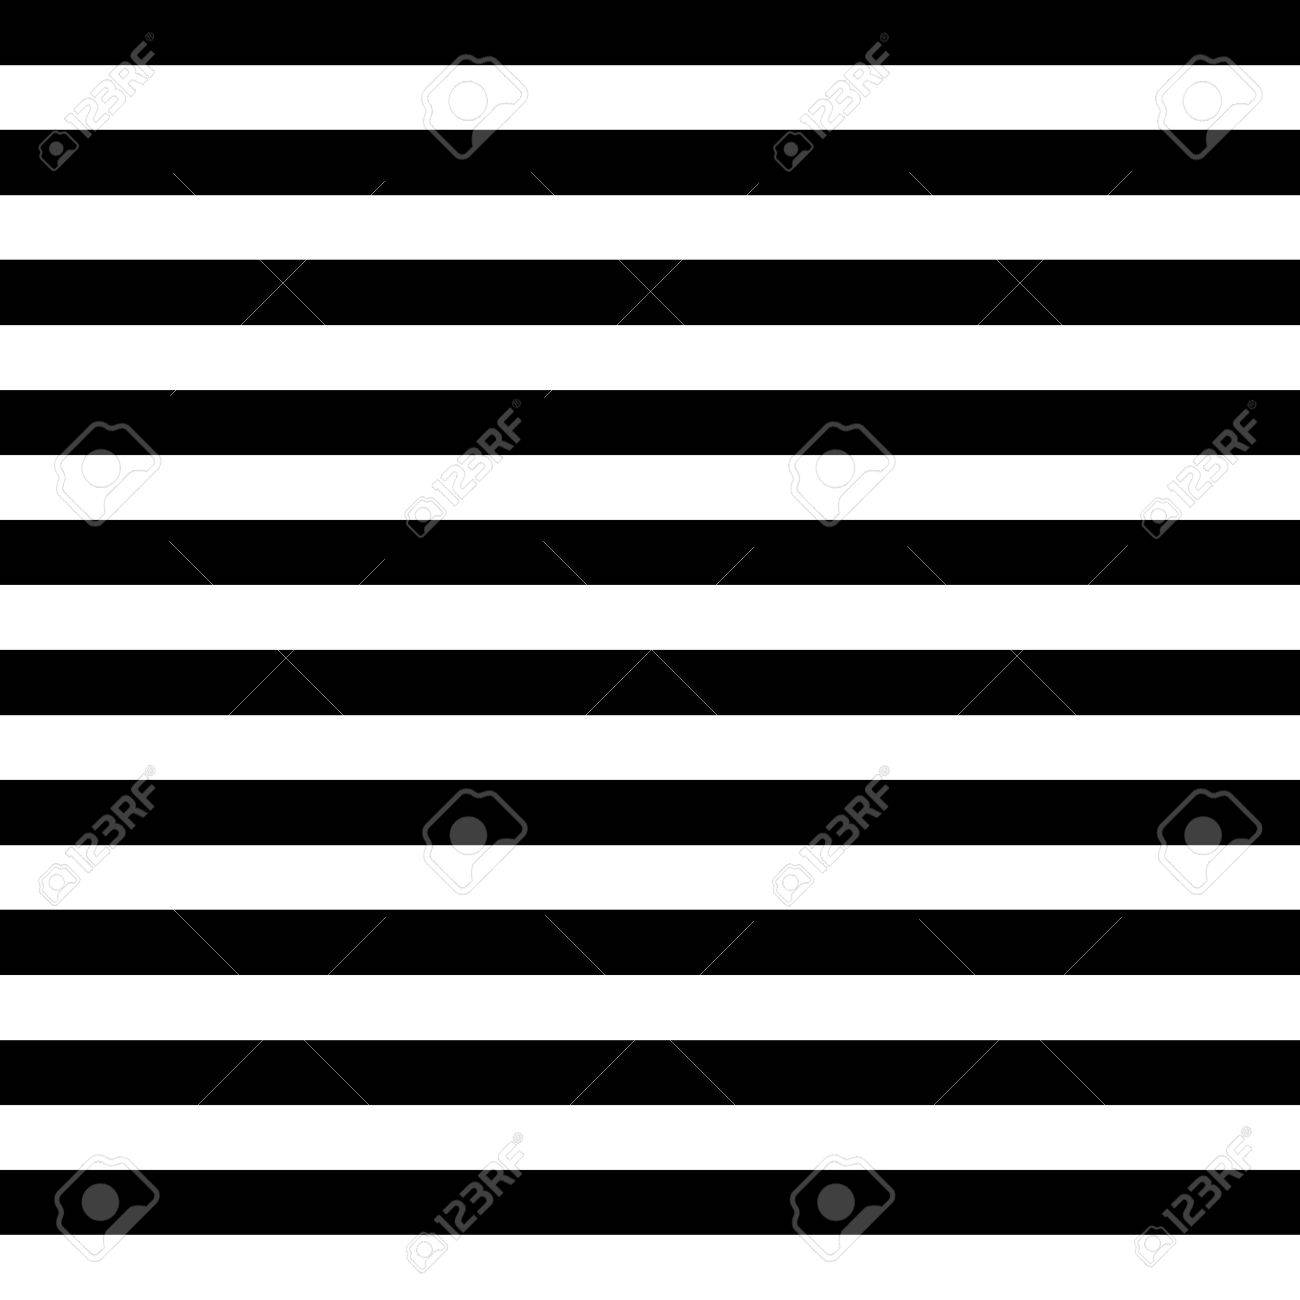 Vector Striped Seamless Pattern. Black and white background - 54021913